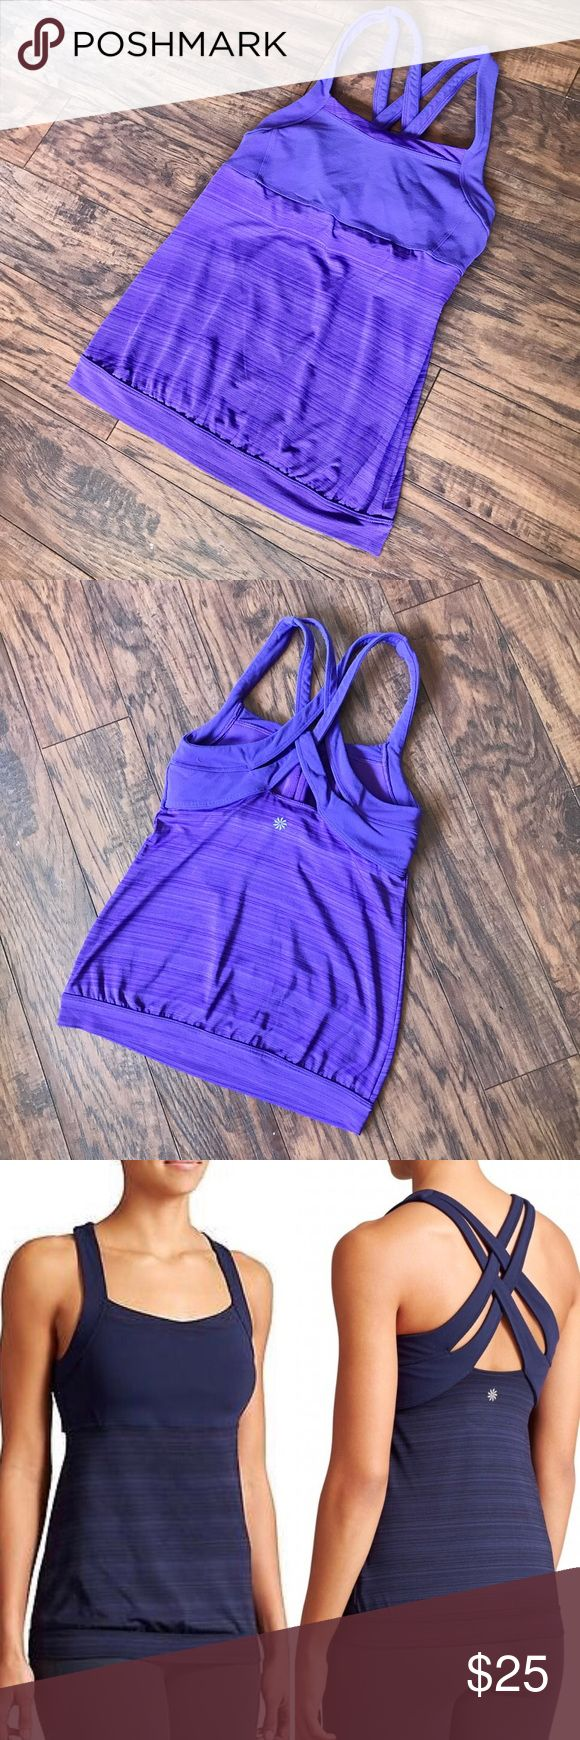 Athlete Purple Workout Tank A strappy and supportive workout Tank from Athleta. Great for yoga or the gym. Cross-cross straps in back. The color is purple, but I included the navy stock photo so you can see what it looks like on. I love this top and wish it fit me! Athleta Tops Tank Tops